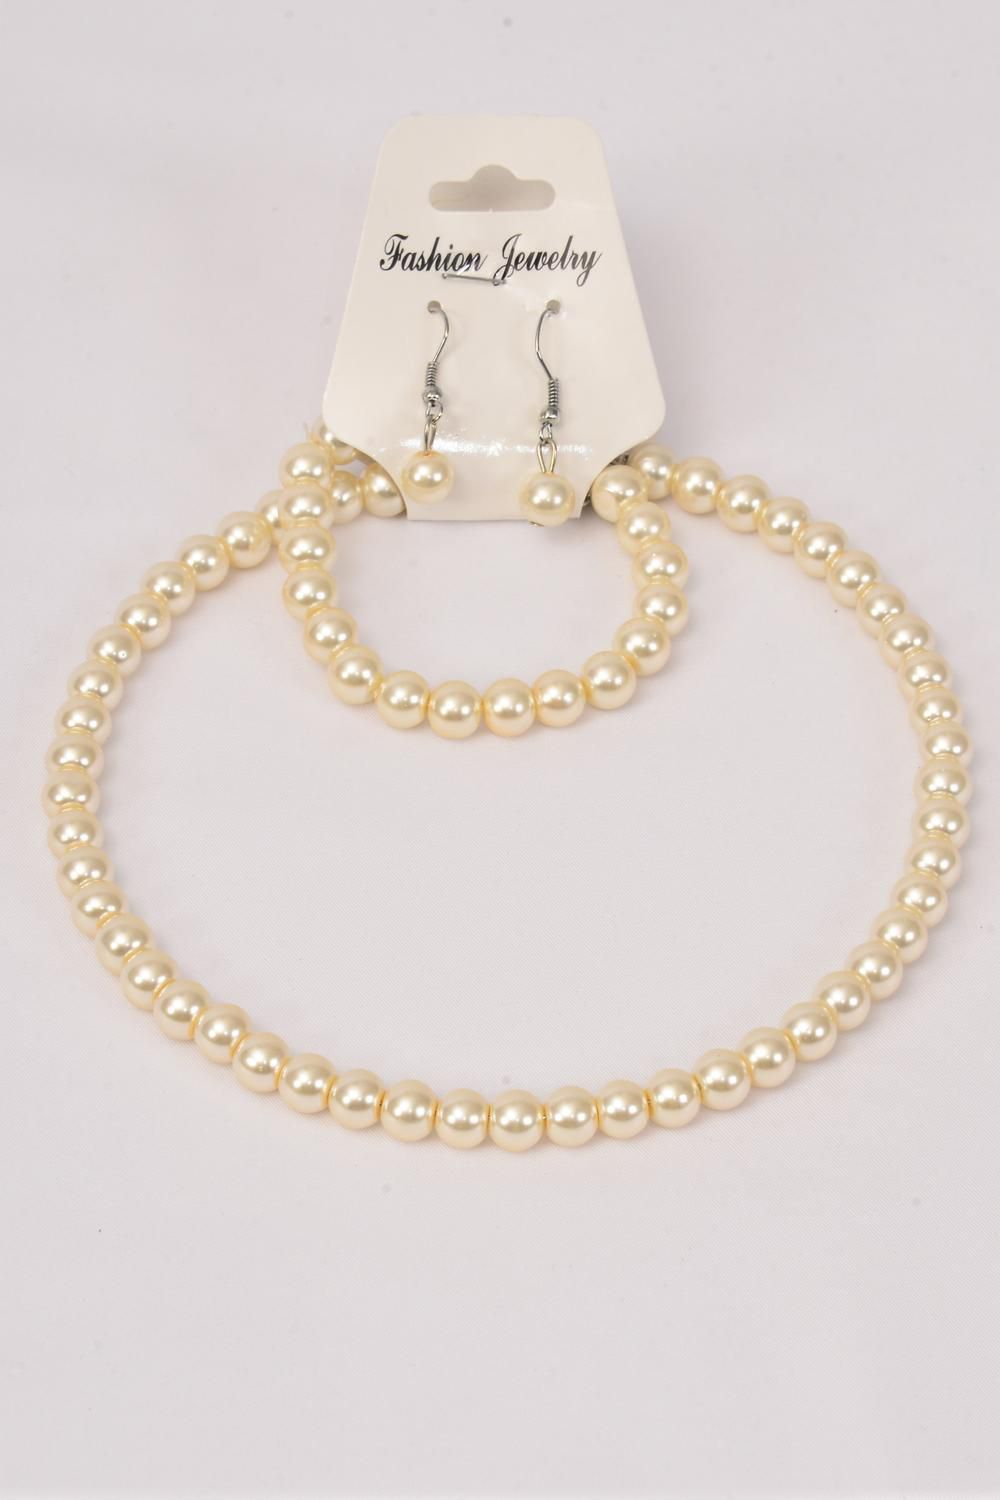 Wholesale Western Jewelry Supplies Necklace Sets Choker 16 Inch 10 Mm Cream Glass Pearl